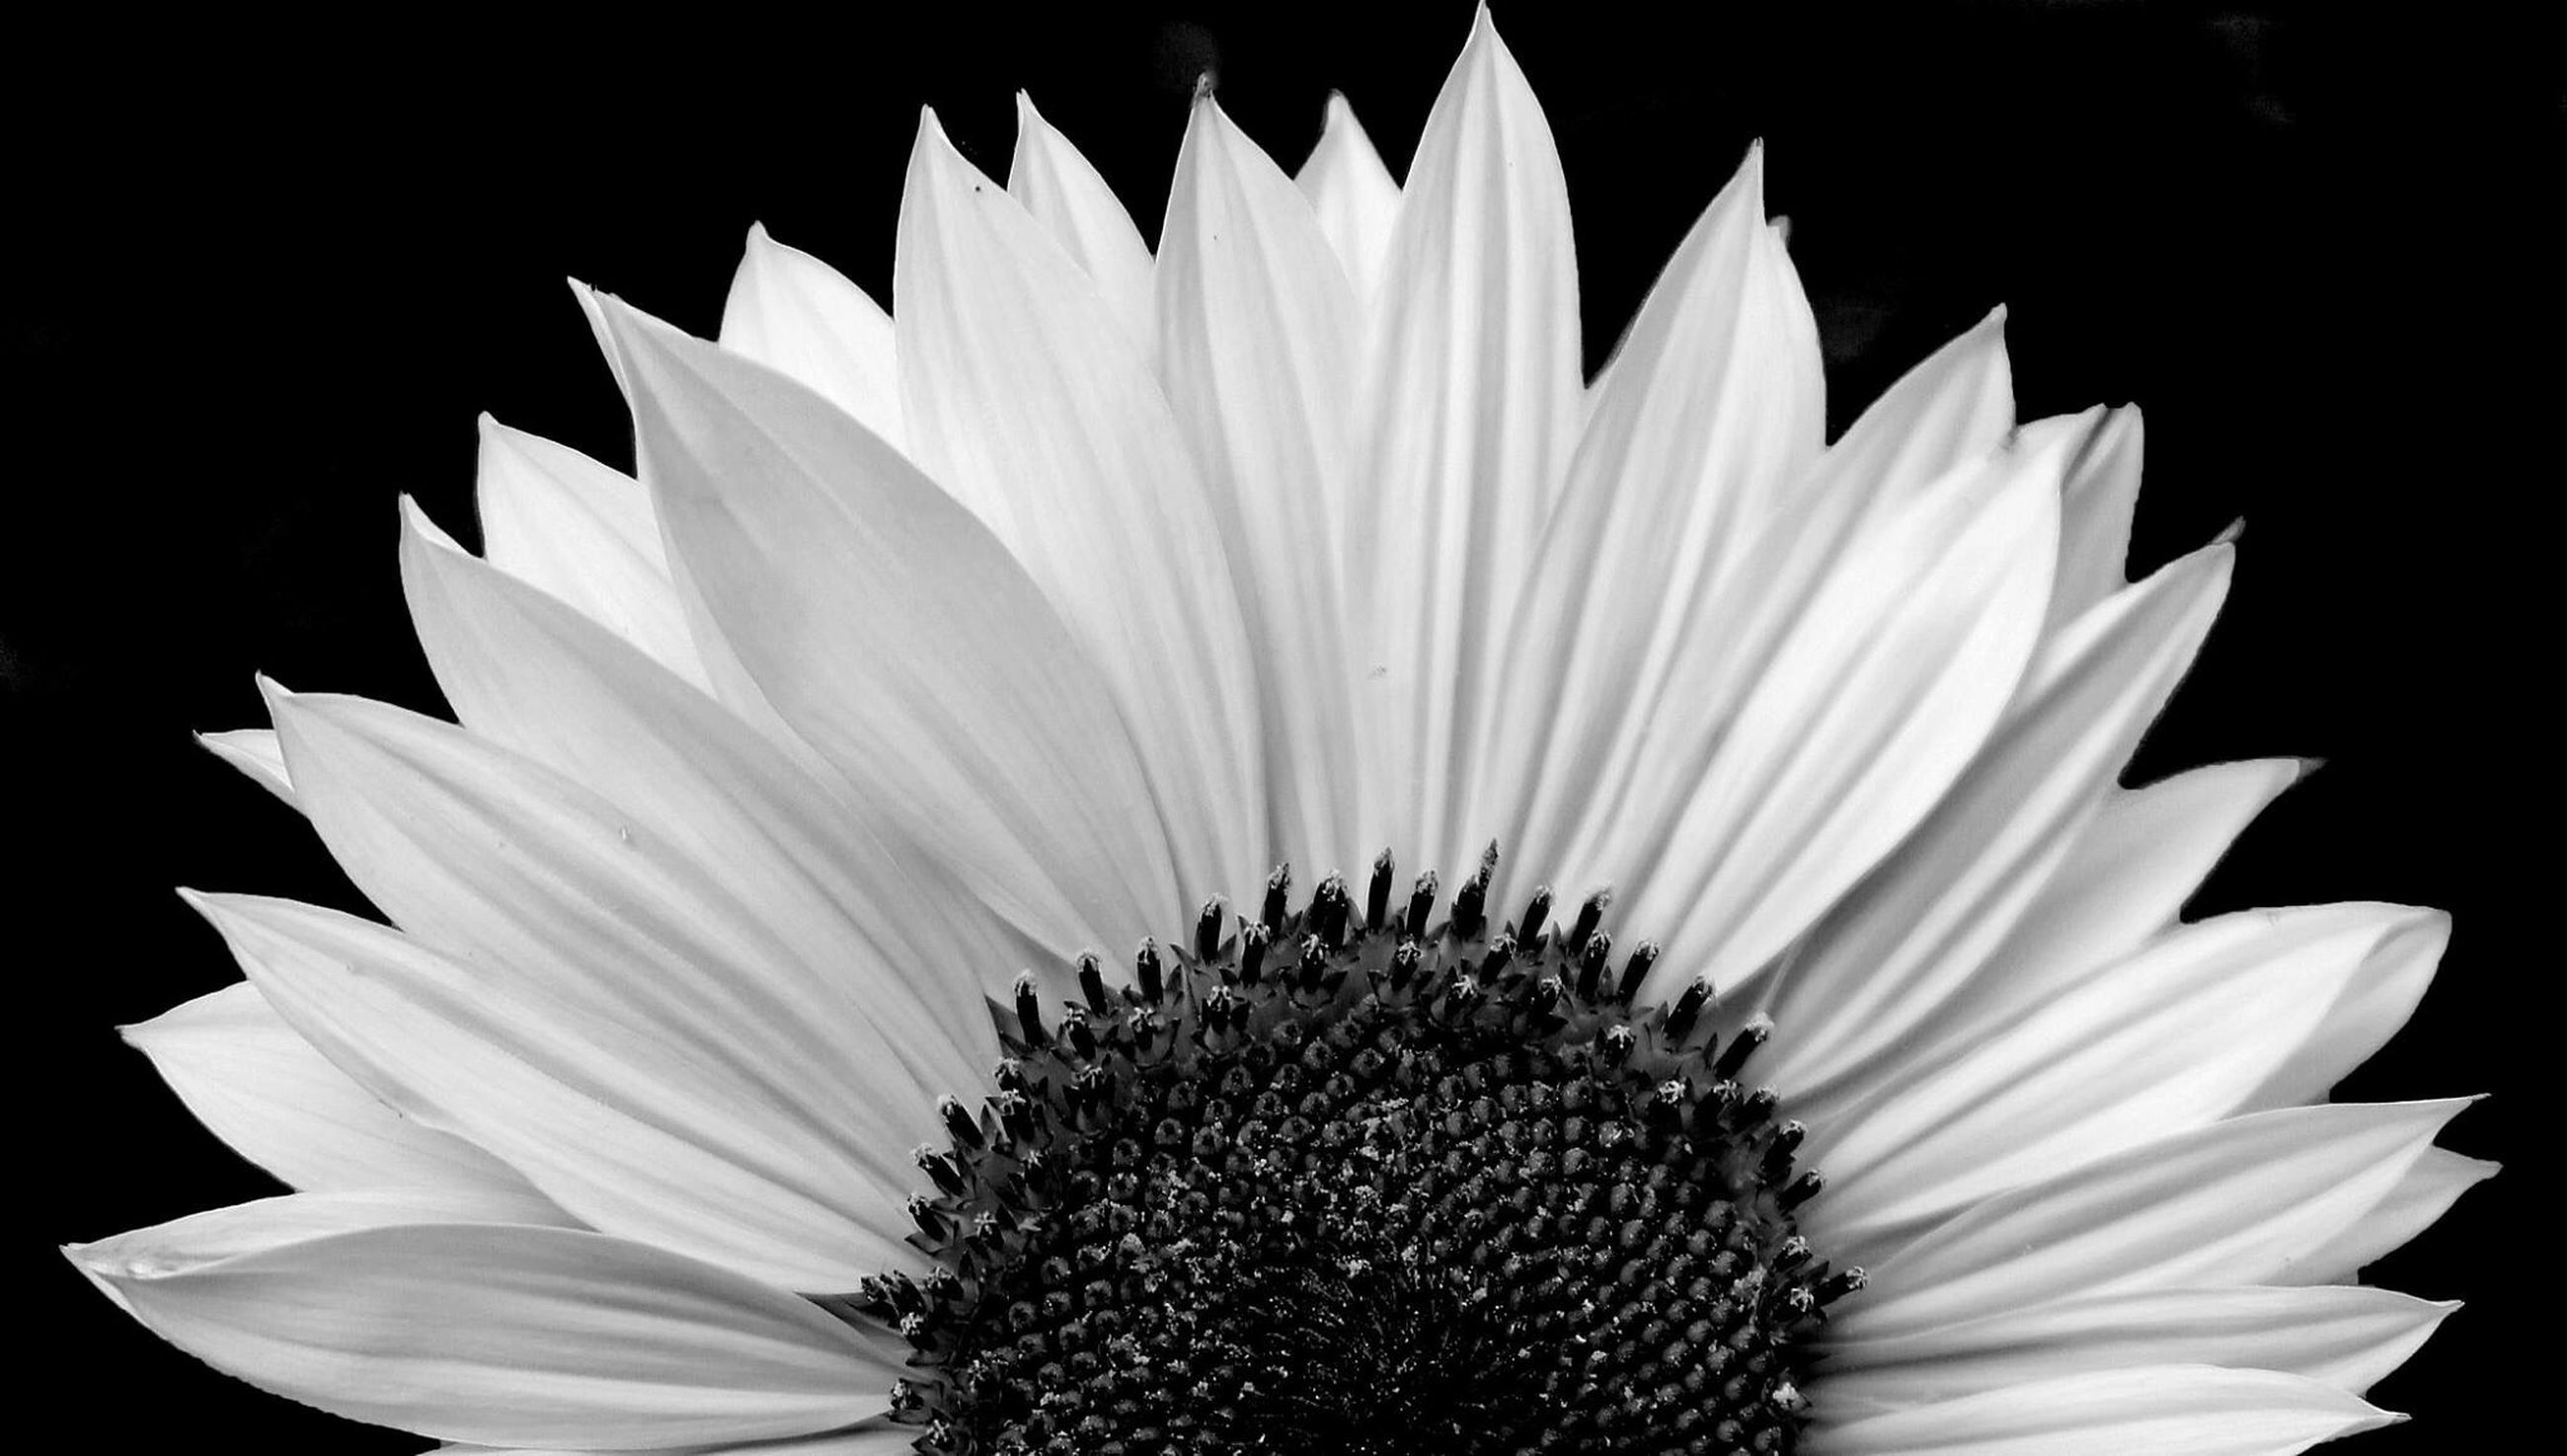 flower, petal, flower head, freshness, single flower, fragility, pollen, studio shot, close-up, black background, white color, beauty in nature, blooming, growth, nature, no people, white, daisy, plant, outdoors